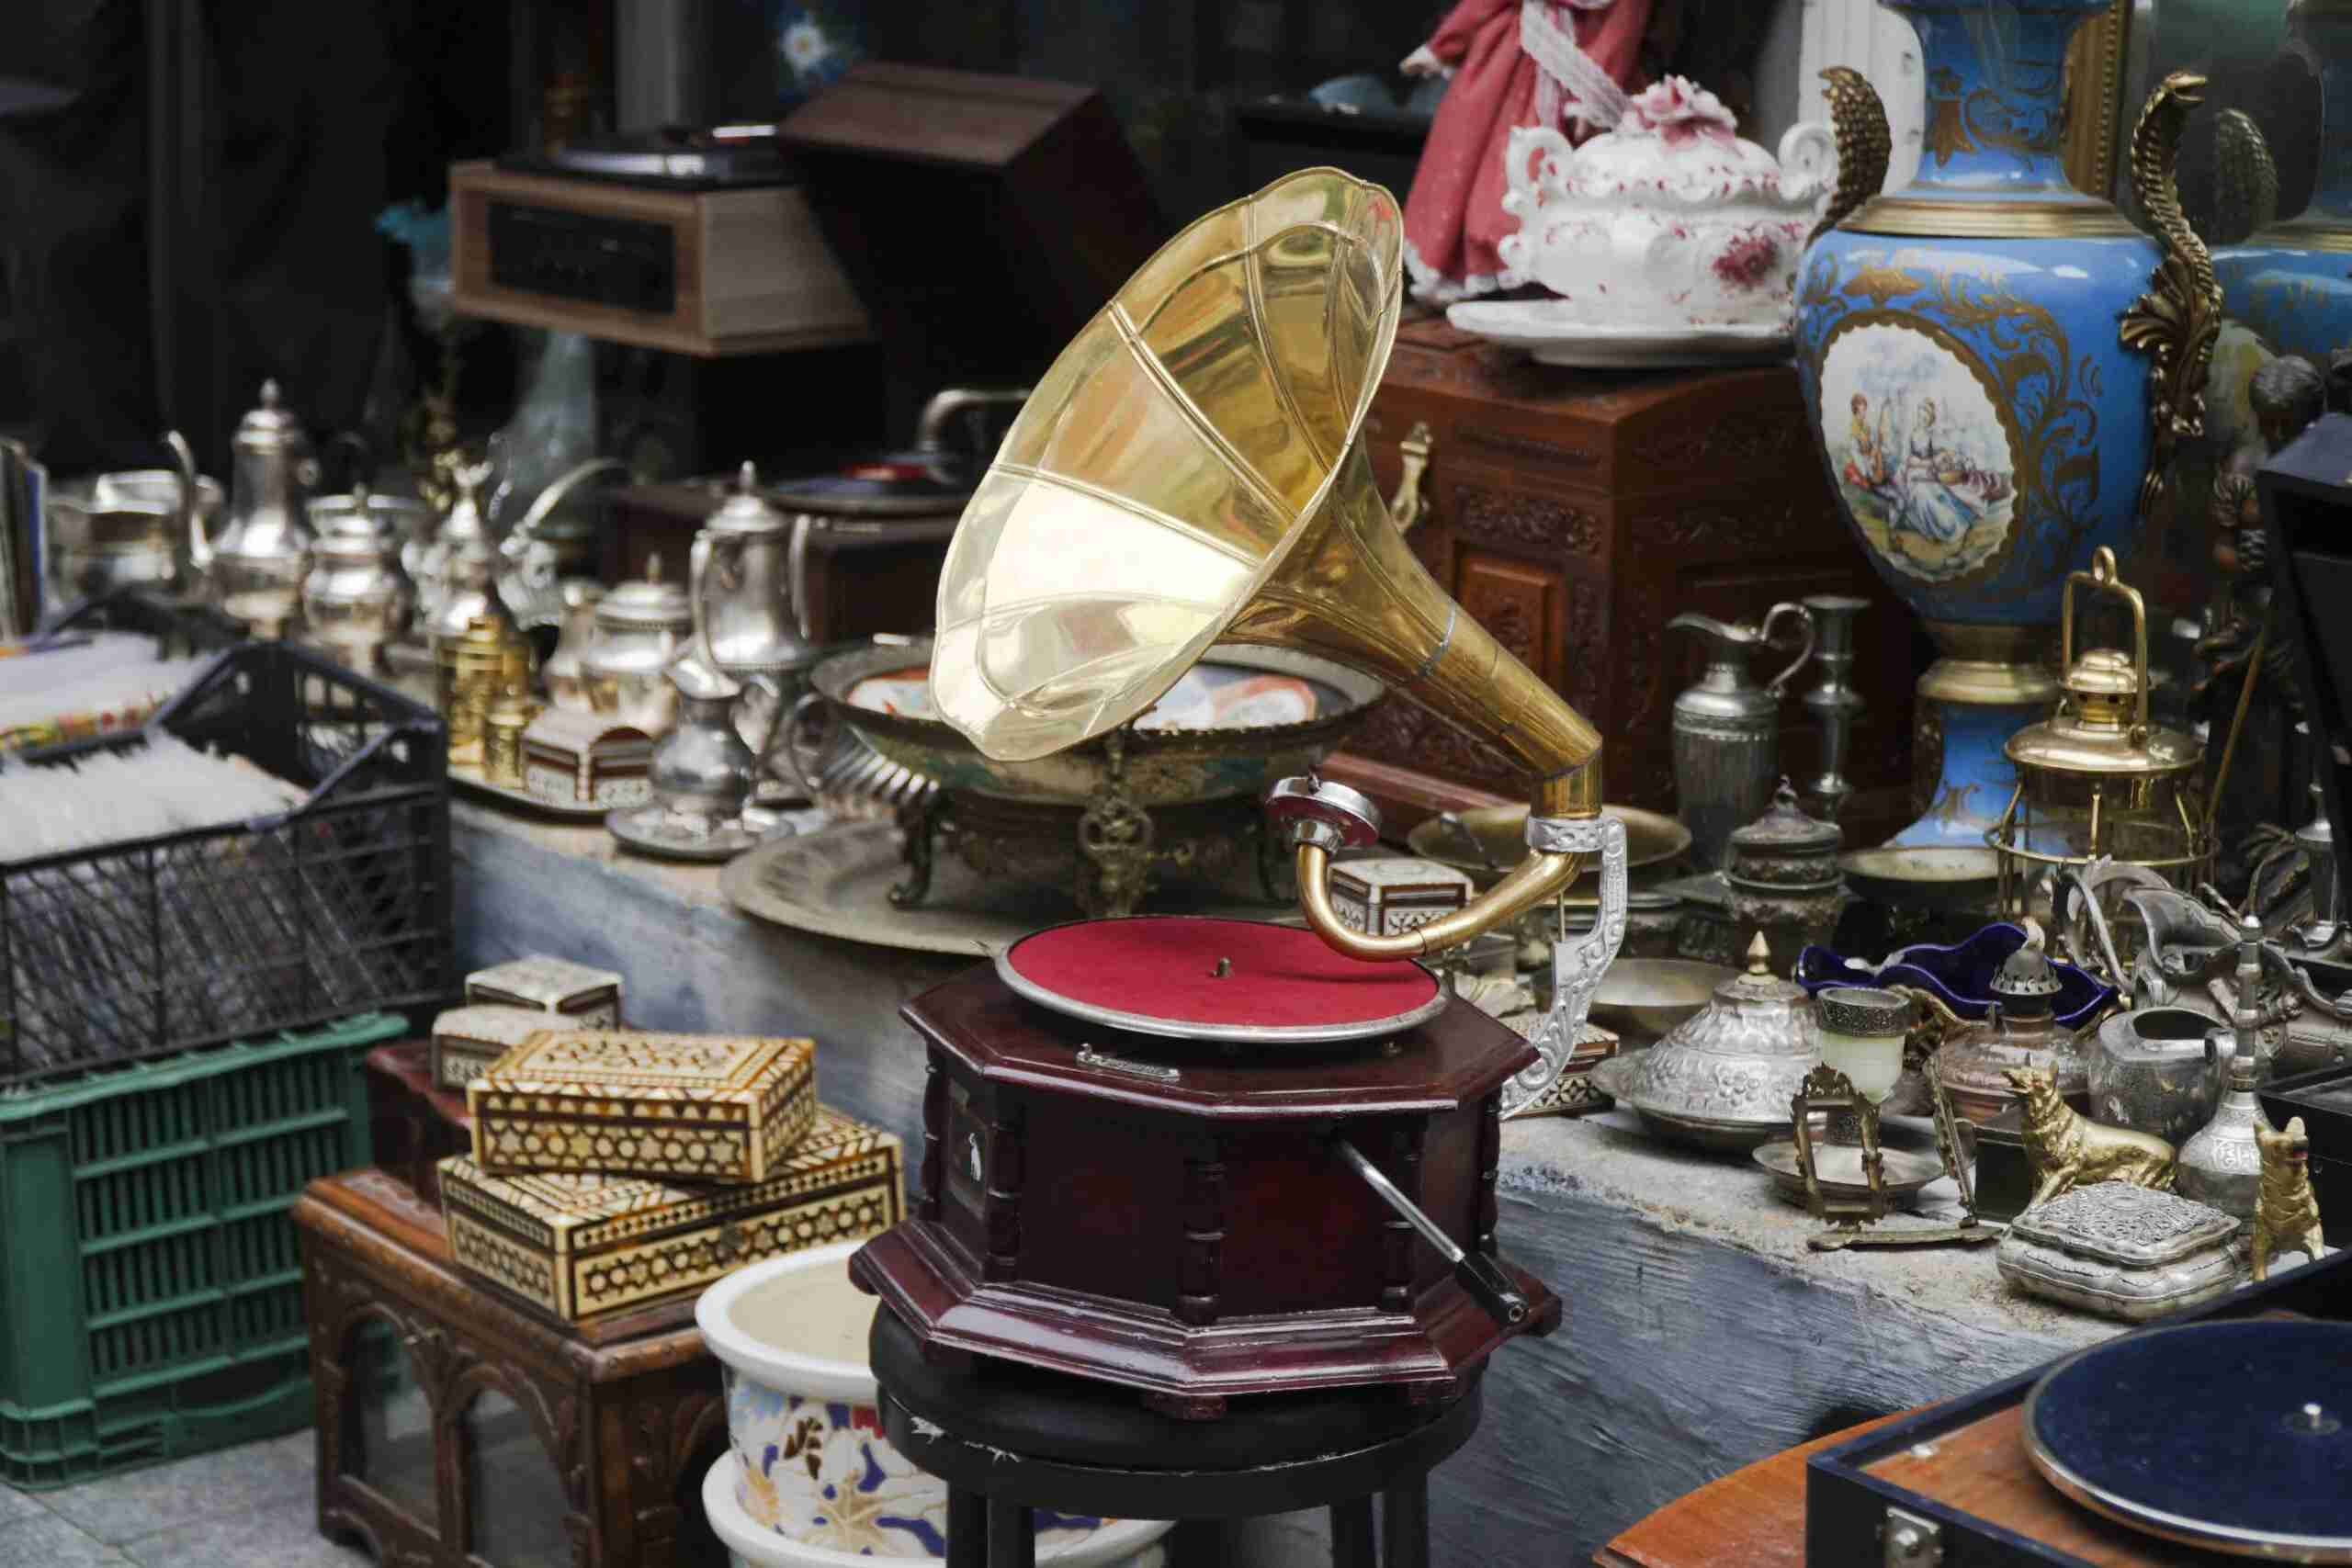 Round Top, TX, is known for its antiques and other vintage collectibles. Photo by Engin Sezer/Shutterstock.